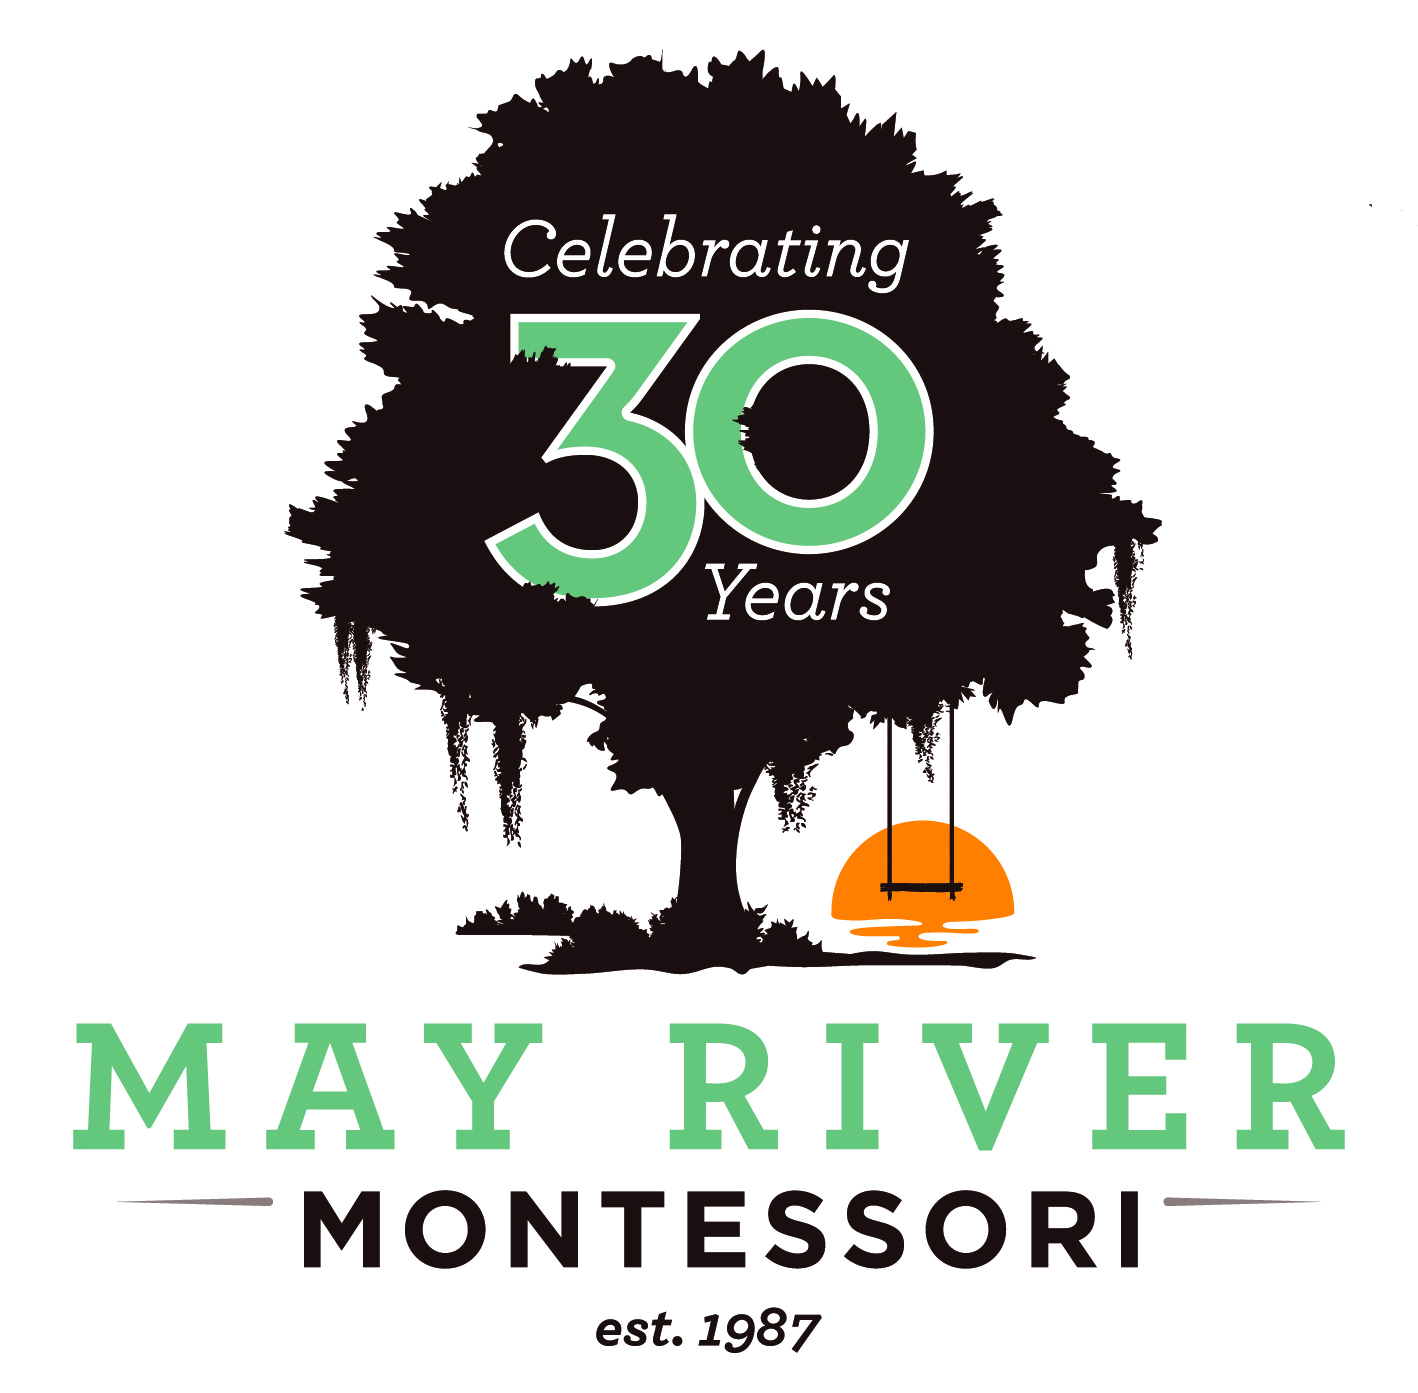 May River Montessori